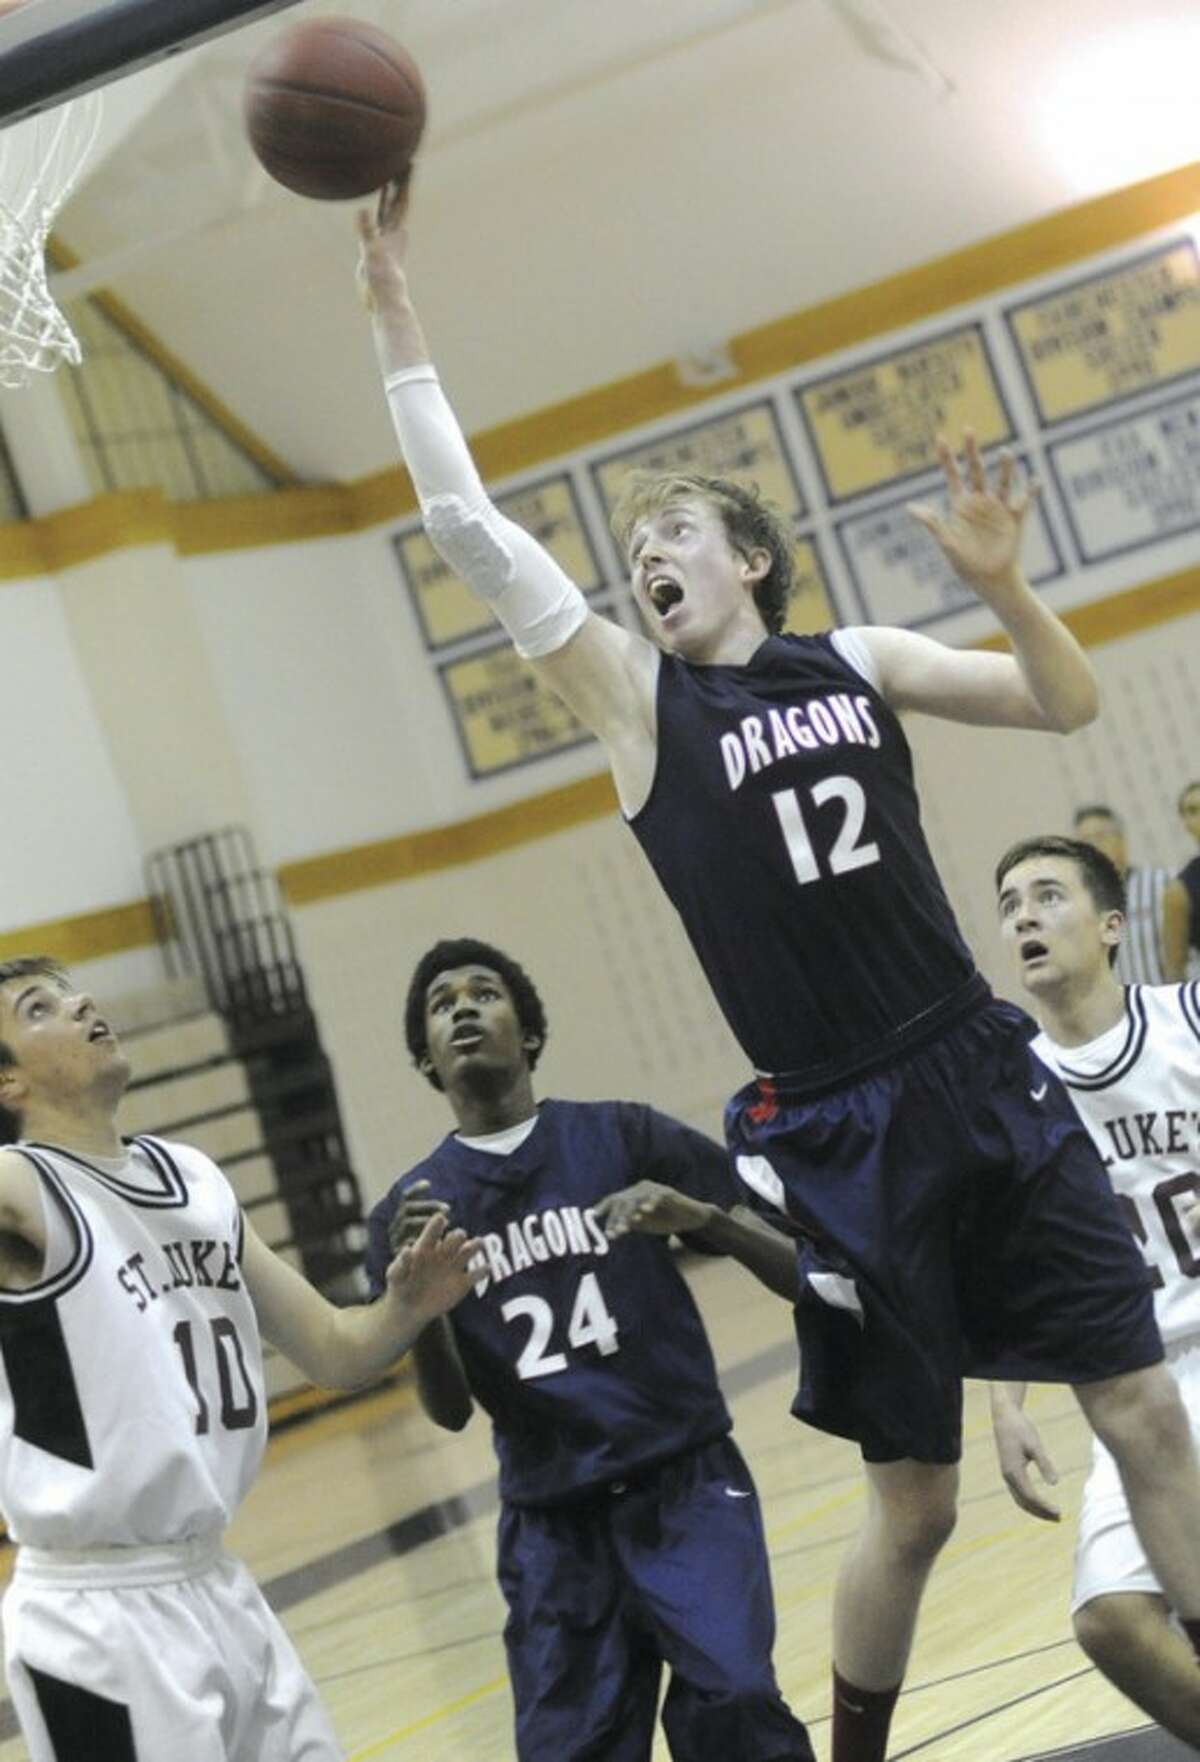 Patrick Ryan (12) of Greens Farms Academy goes up for a shot during Monday's season-opening game against St. Luke's. Ryan collected 15 points in the Dragons' 75-60 victory. Hour photo/ Matthew Vinci